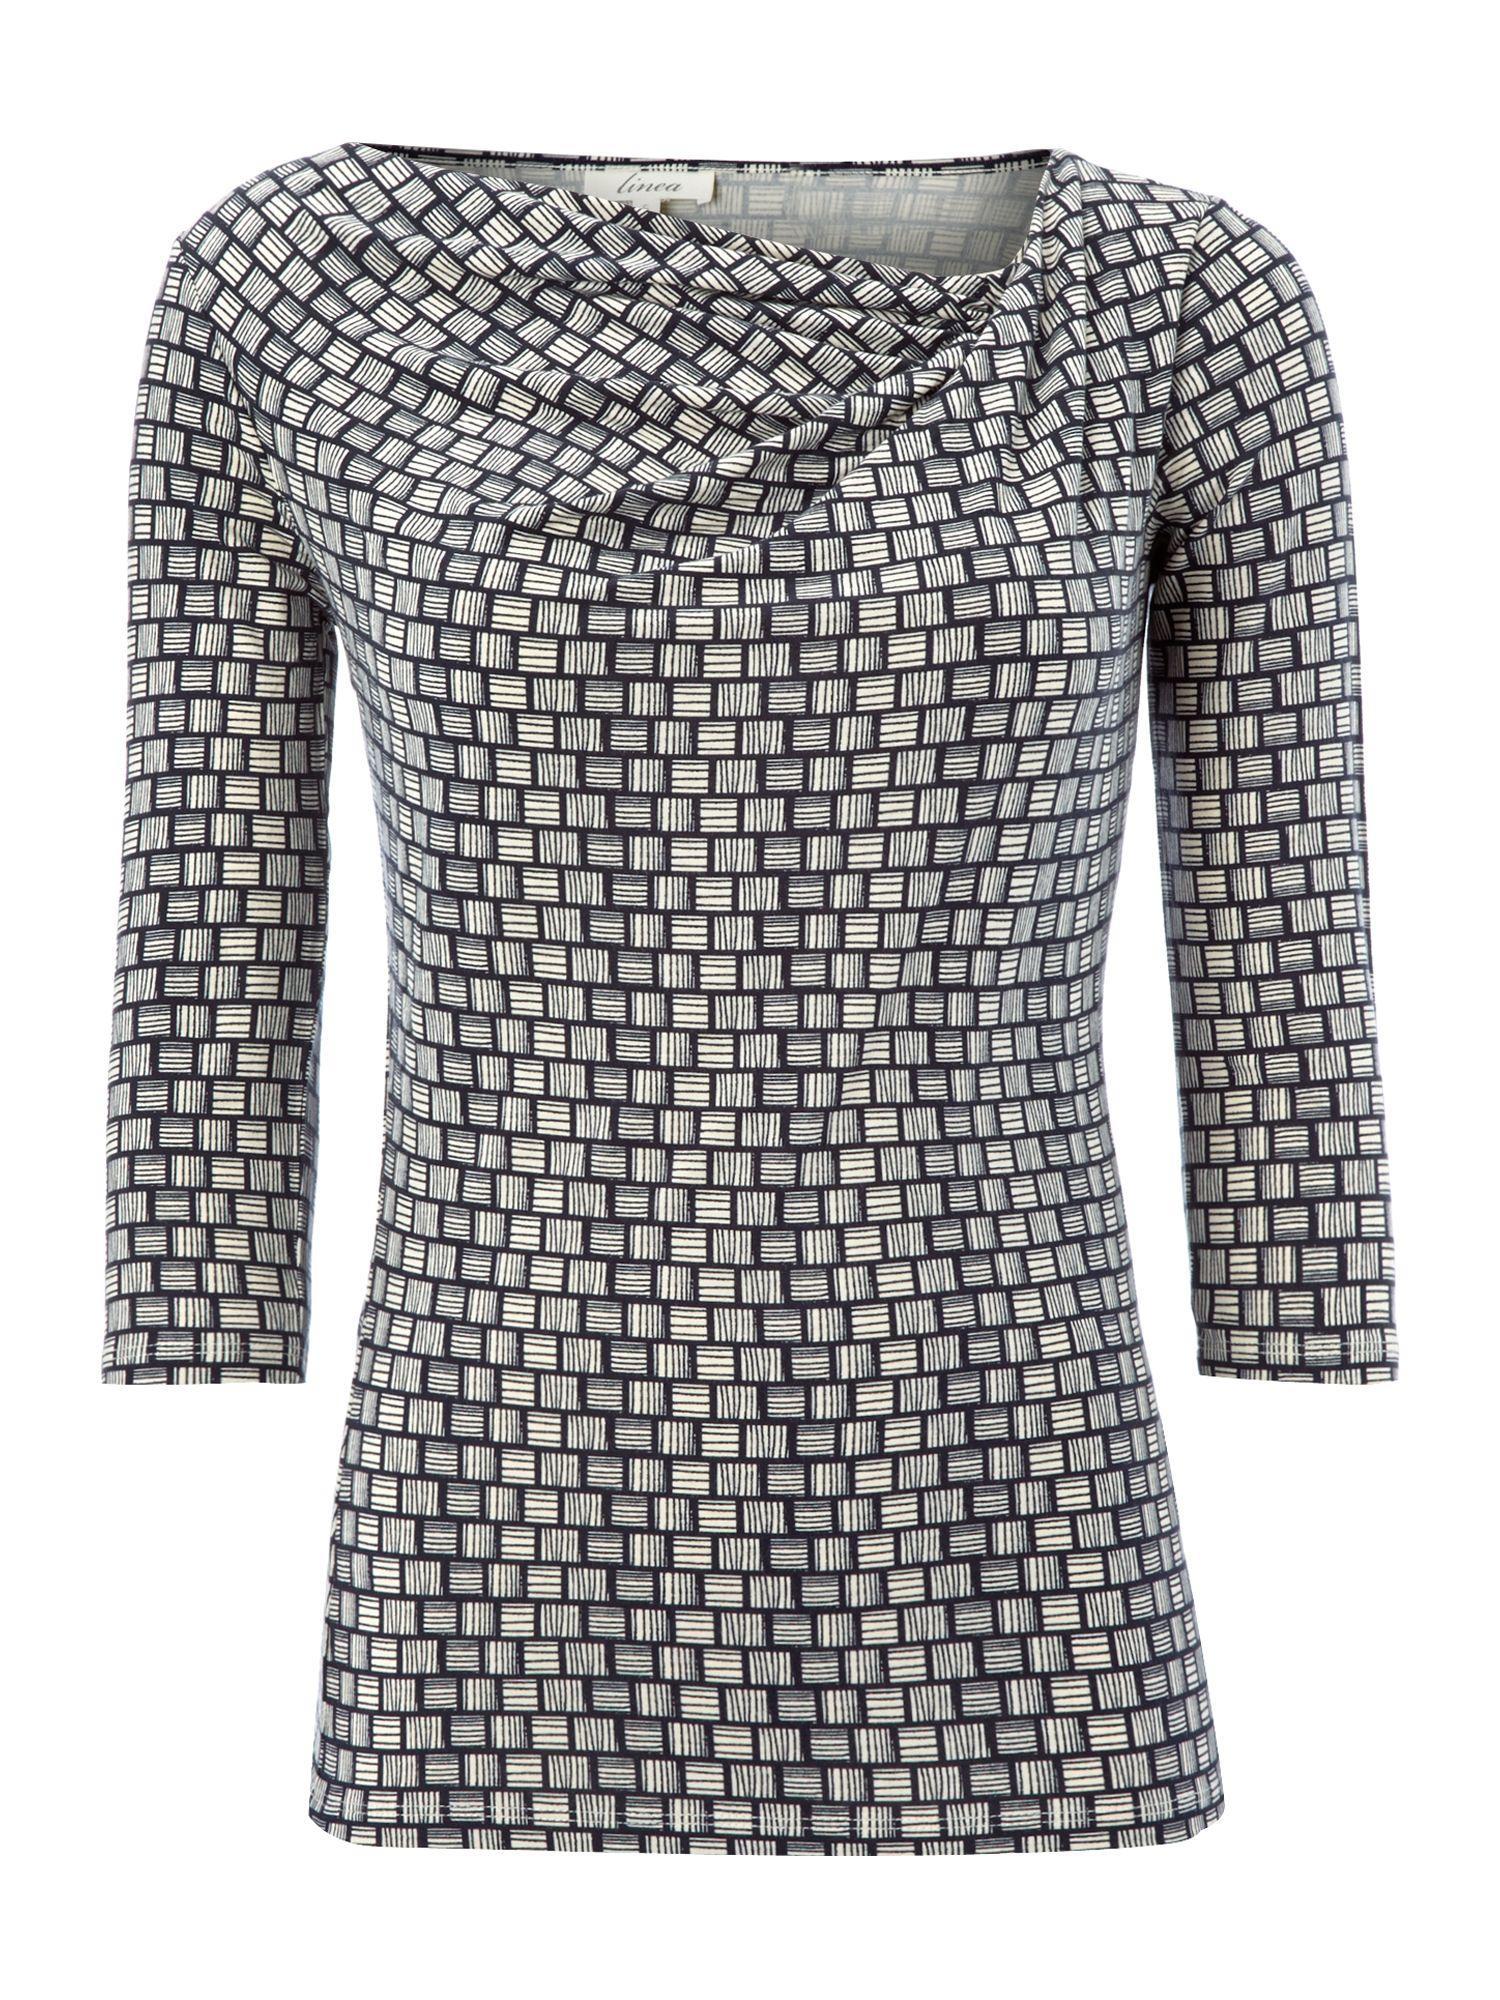 3/4 sleeve twist cowl geo print top